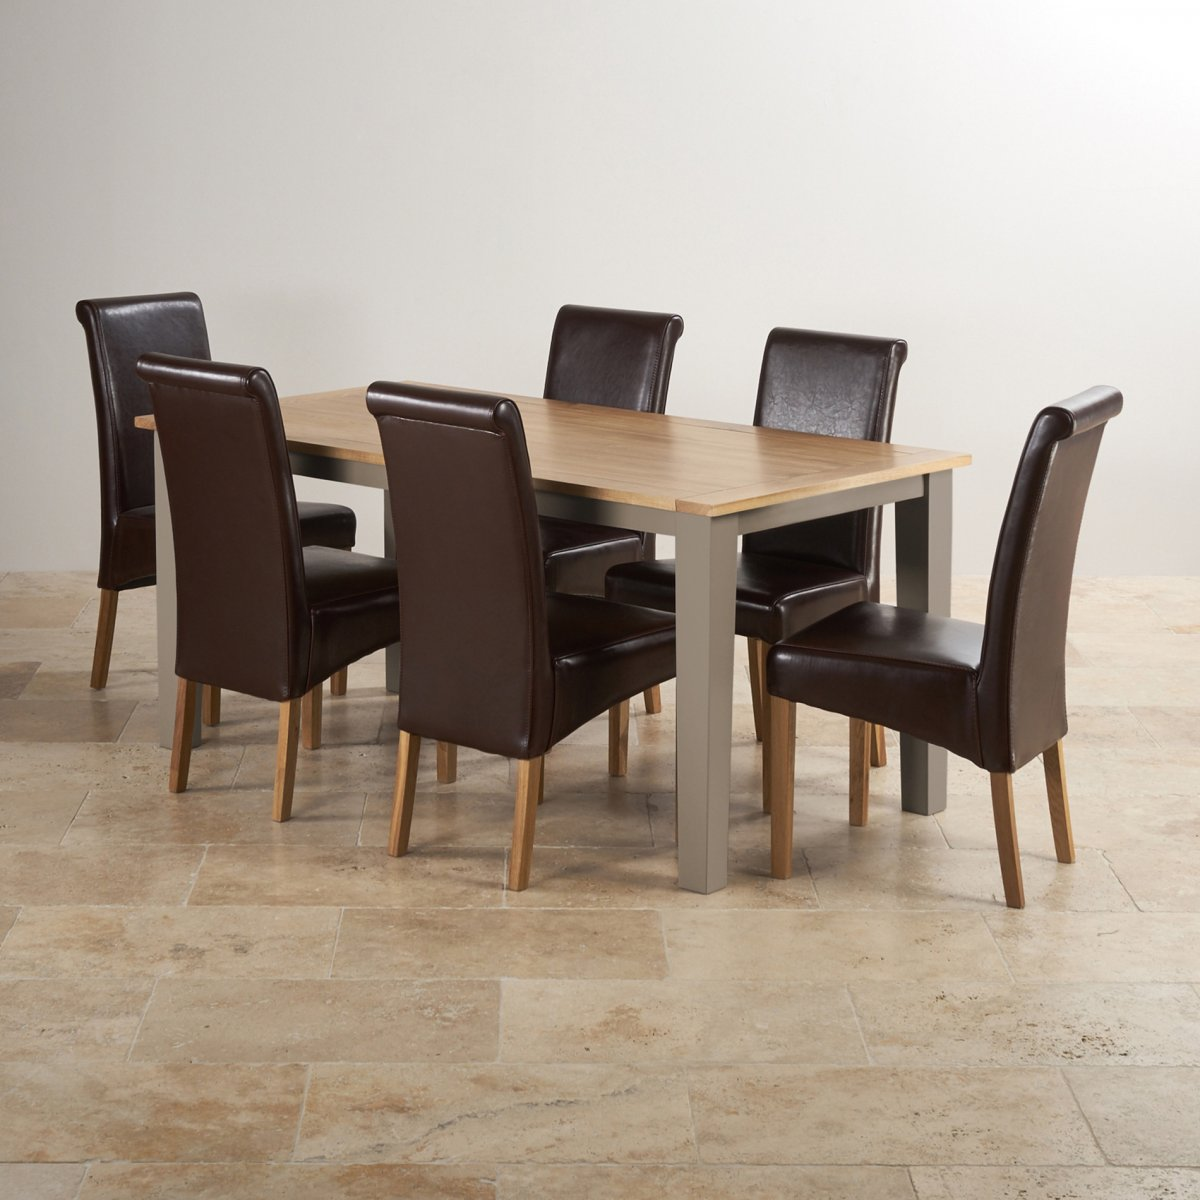 St Ives Dining Set in Grey Painted Oak Table 6 Leather  : st ives natural oak and light grey painted 5ft 6 dining table with 6 leather chairs 57dc1fc33164e6584e2f37443194e9cba43069642bc94 from www.oakfurnitureland.co.uk size 1200 x 1200 jpeg 149kB